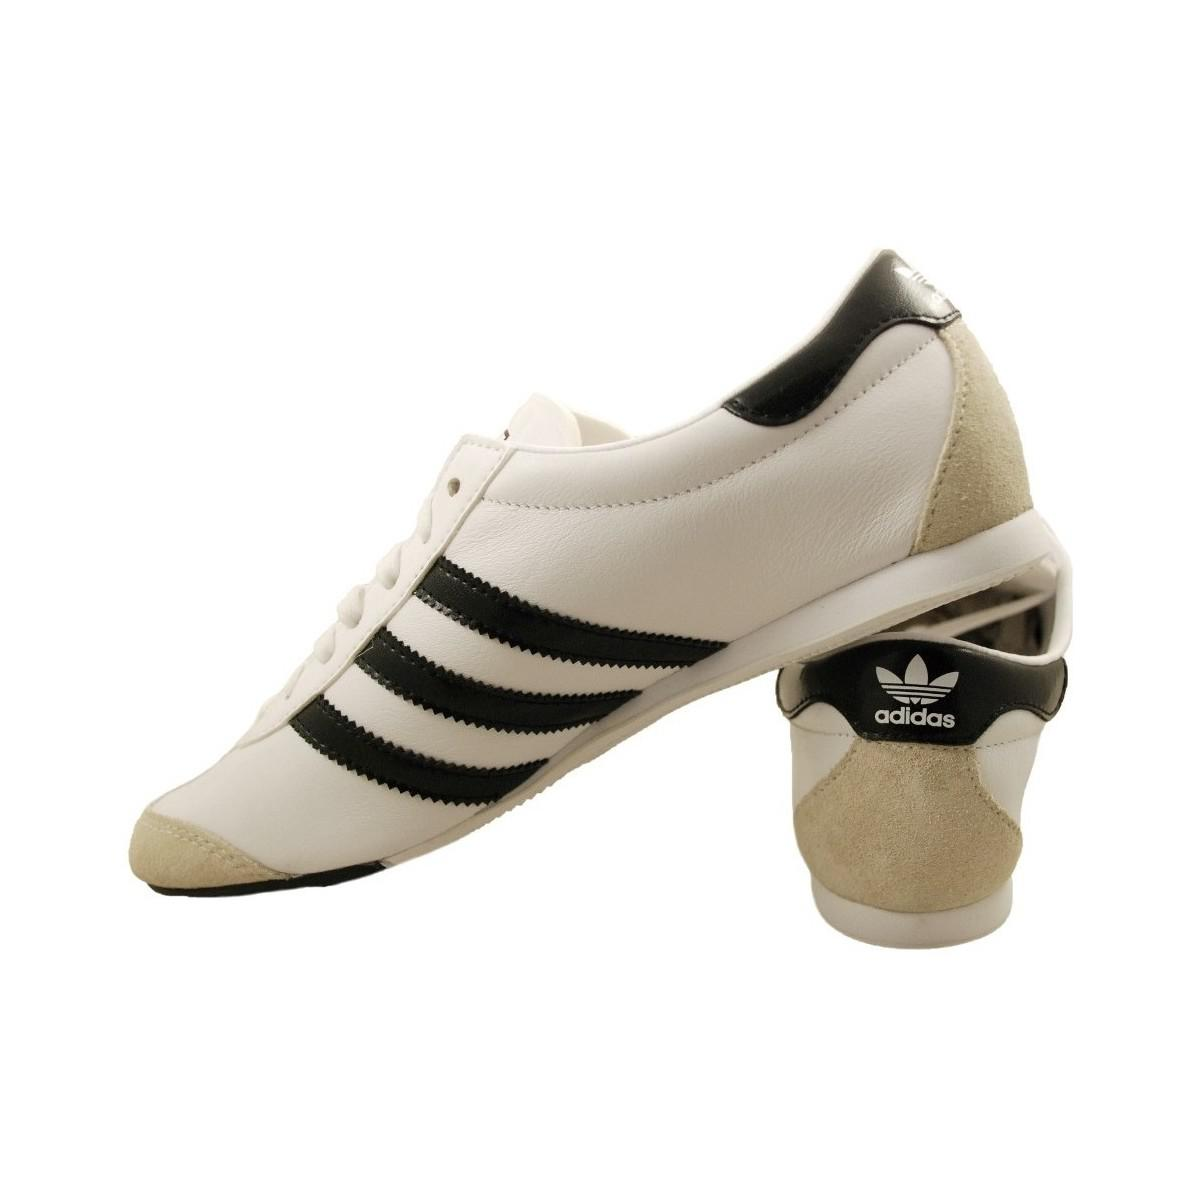 adidas Aditrack W Women's Shoes (trainers) In Black